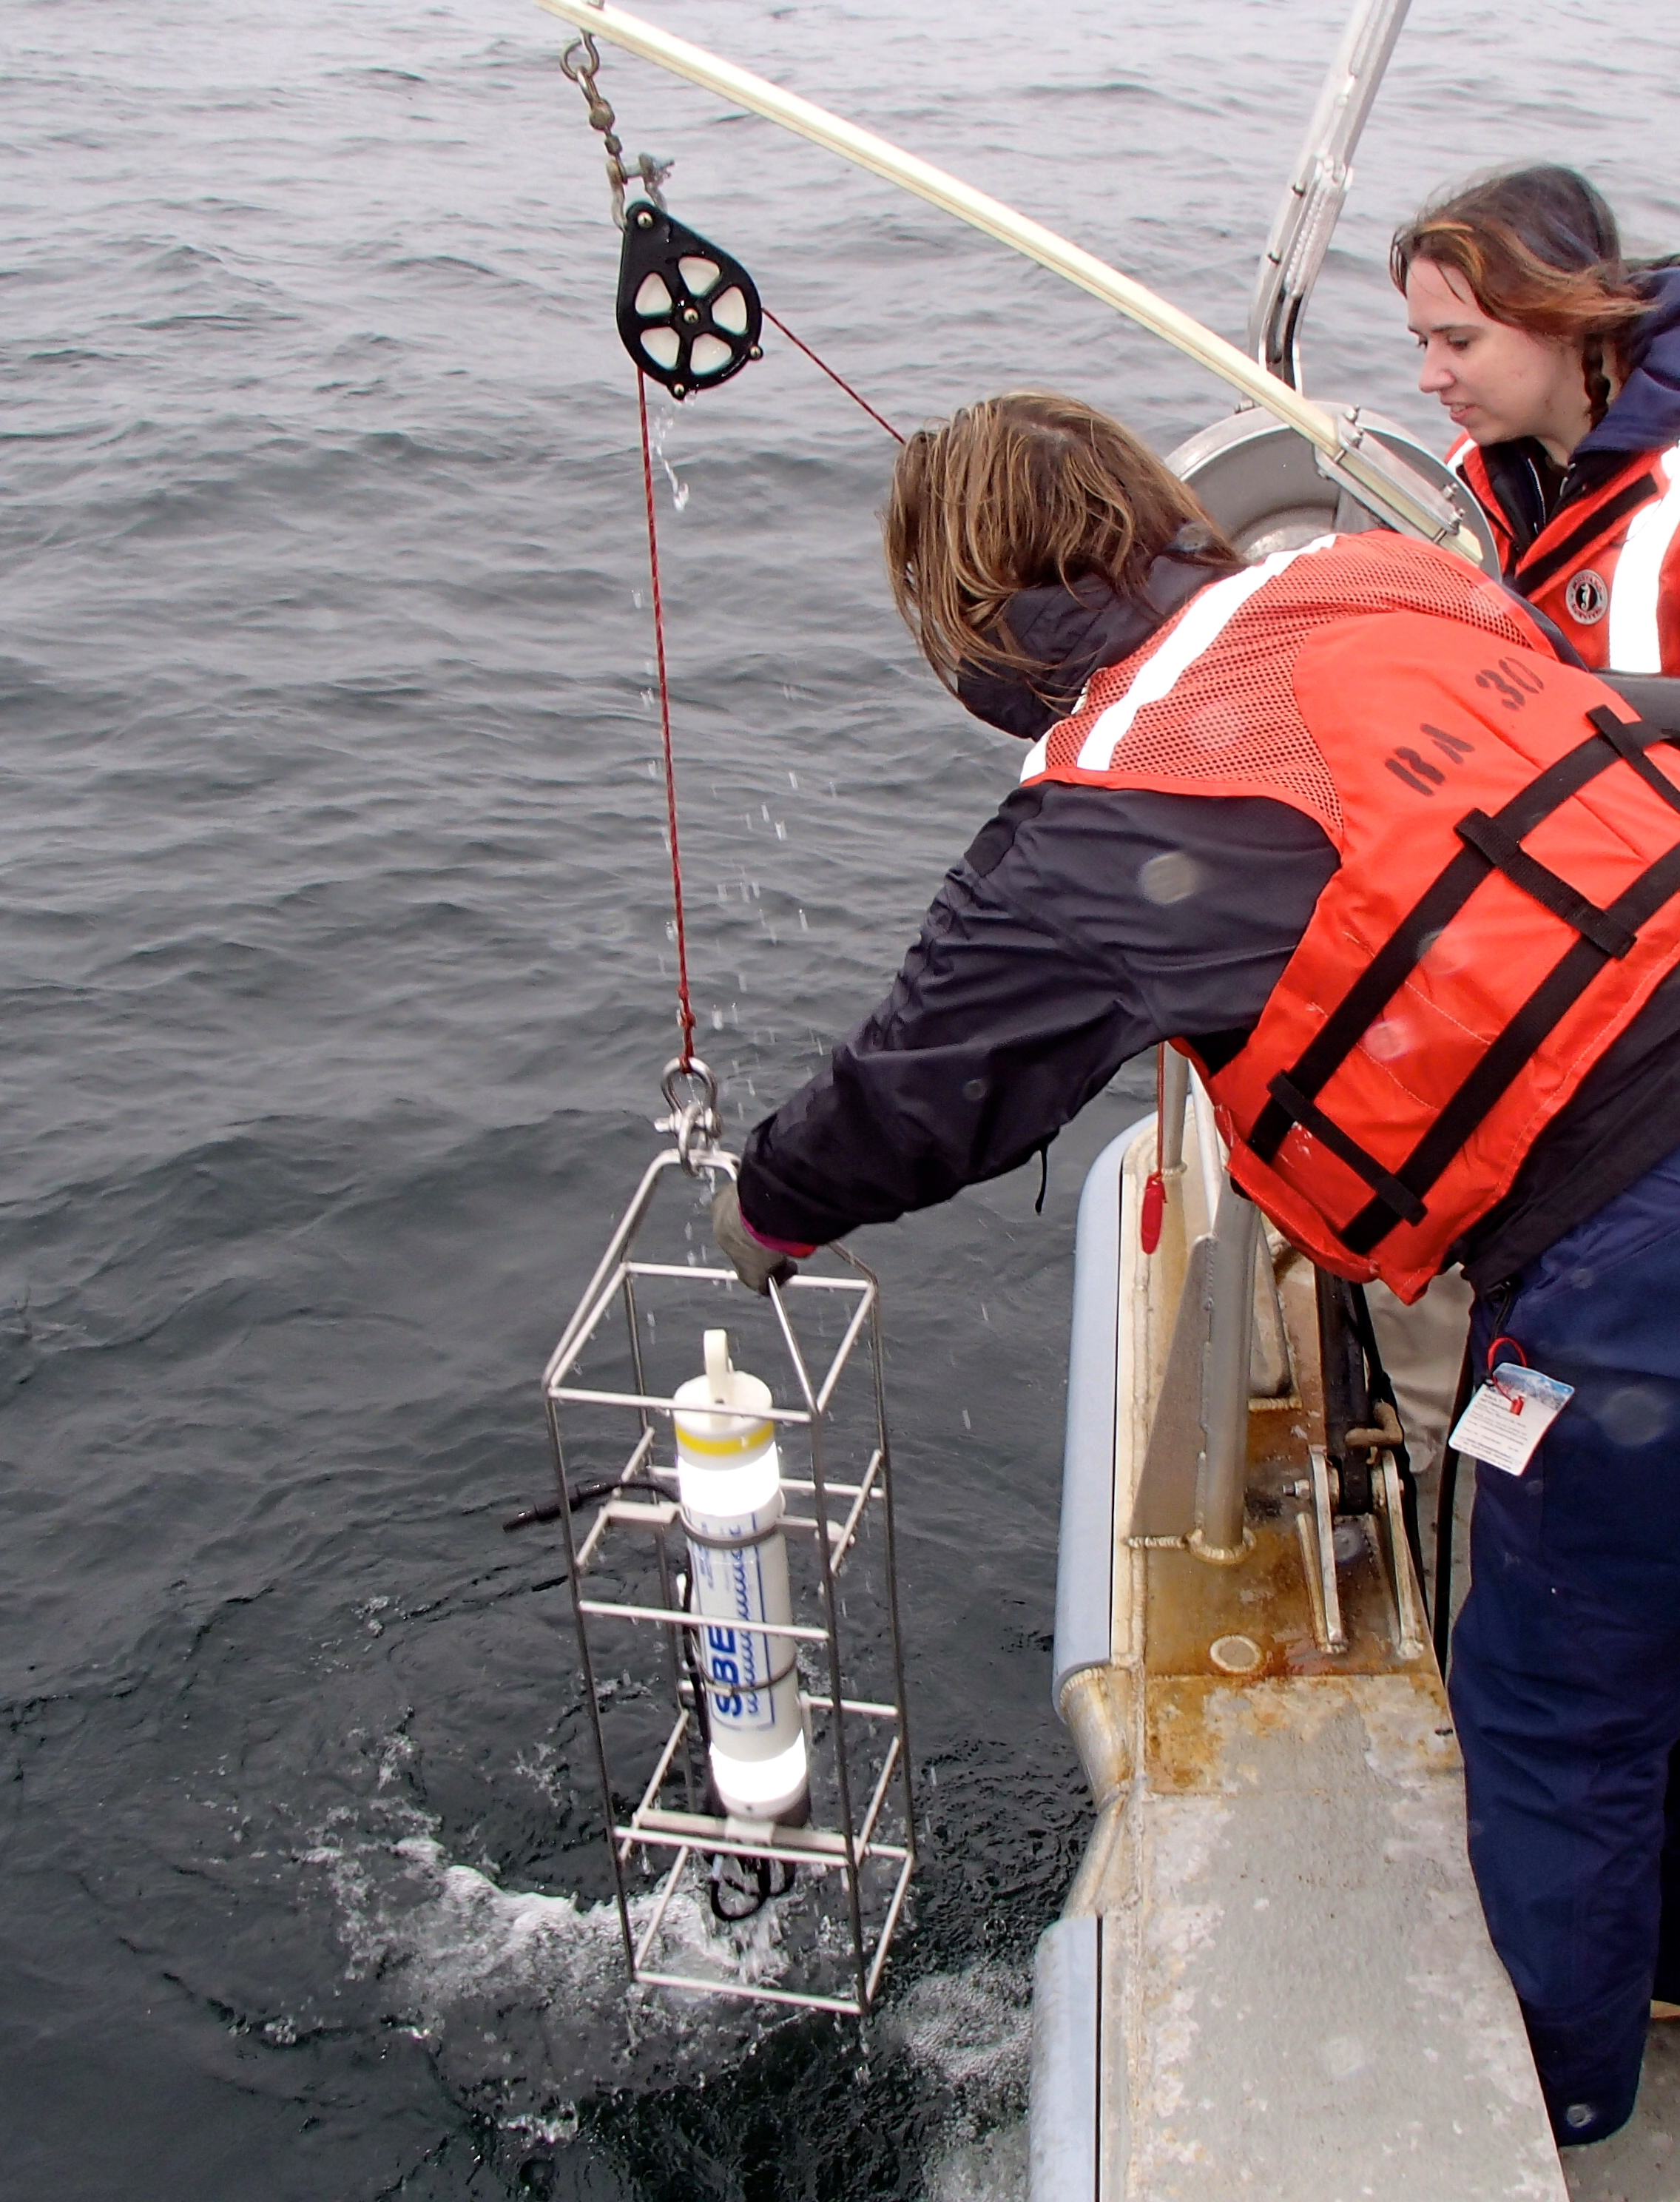 """Avery lowers the CTD into the water for a """"cast"""". The CTD needs to sit in the water for a few minutes to acclimate before being lowered for a profile."""